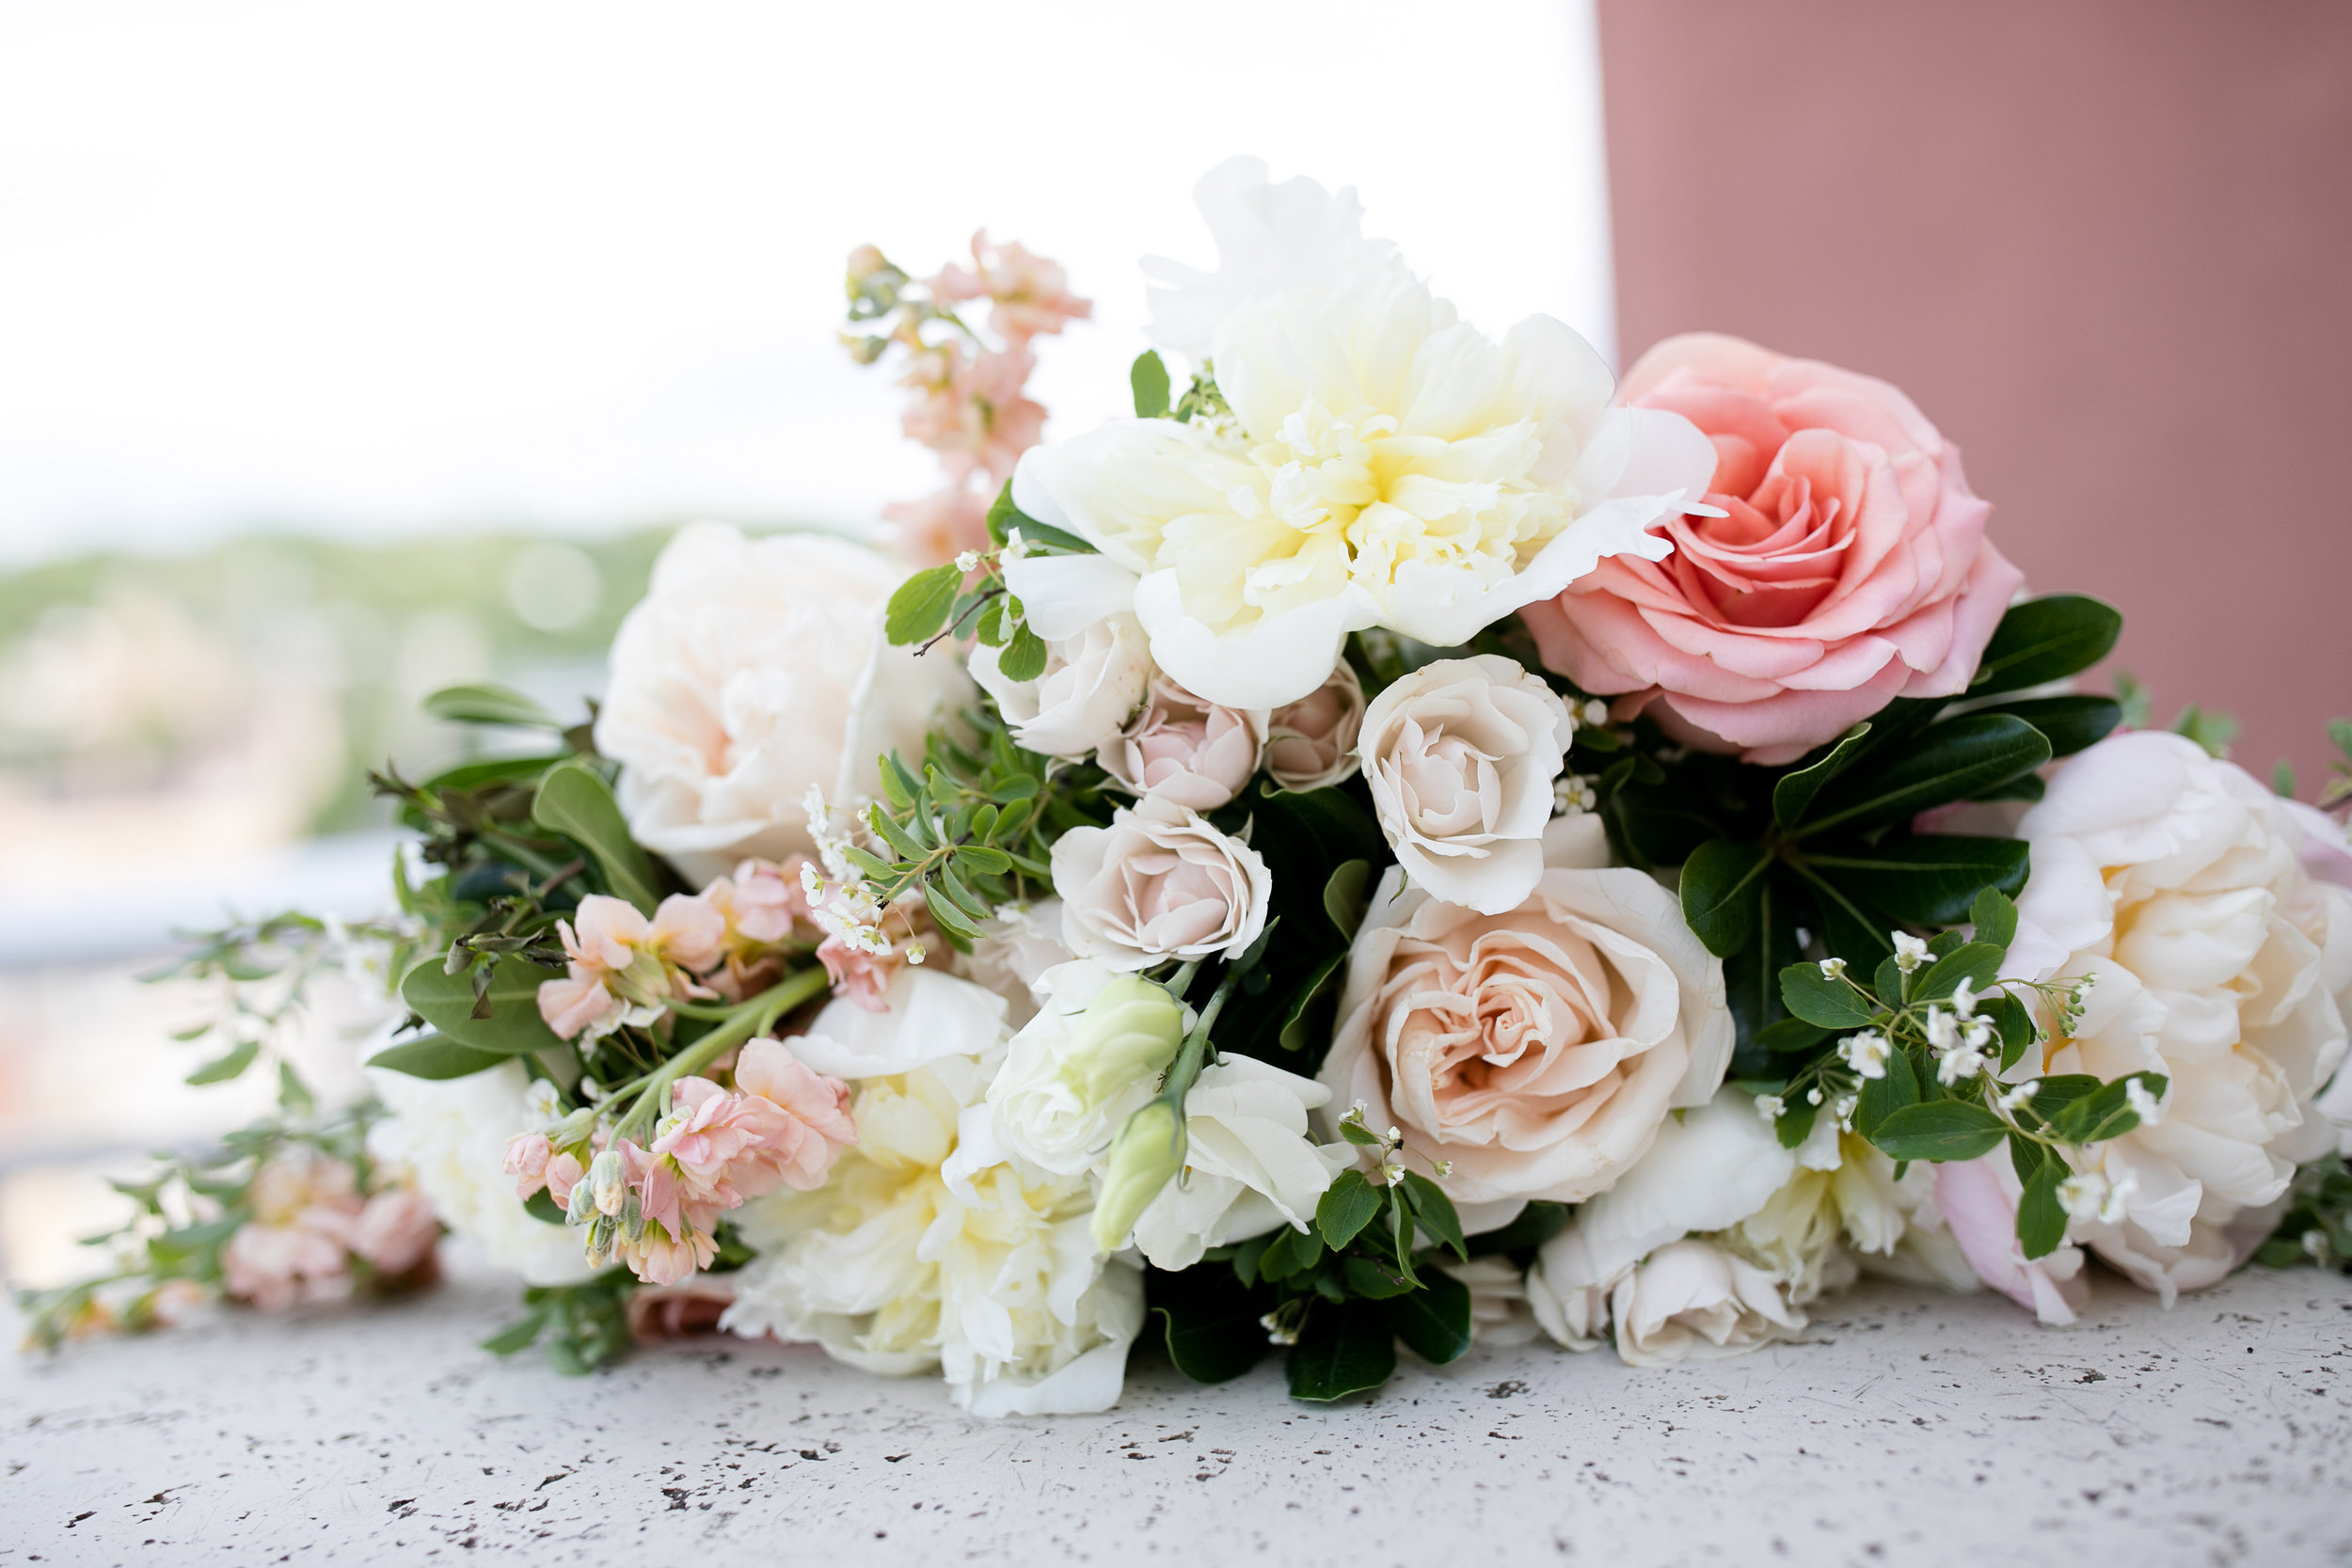 Budding Creations wedding bouquet | Alice HQ photography | Sixpence Events & Planning Minnesota wedding planner | peony, stock, roses, garden roses, lisianthus